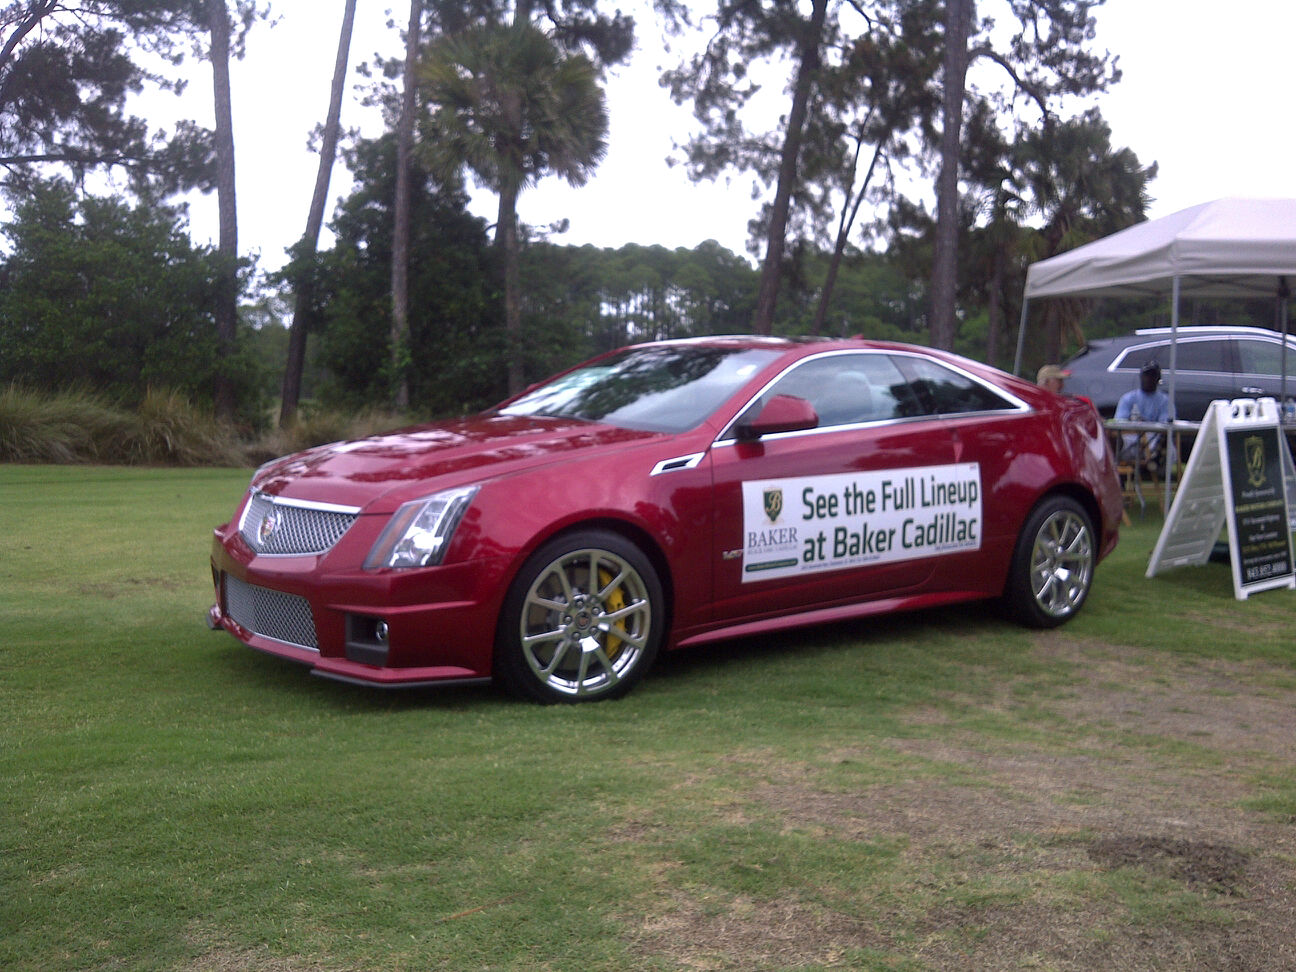 Cadillac golf classic archives baker motor company for Cadillac motor car company